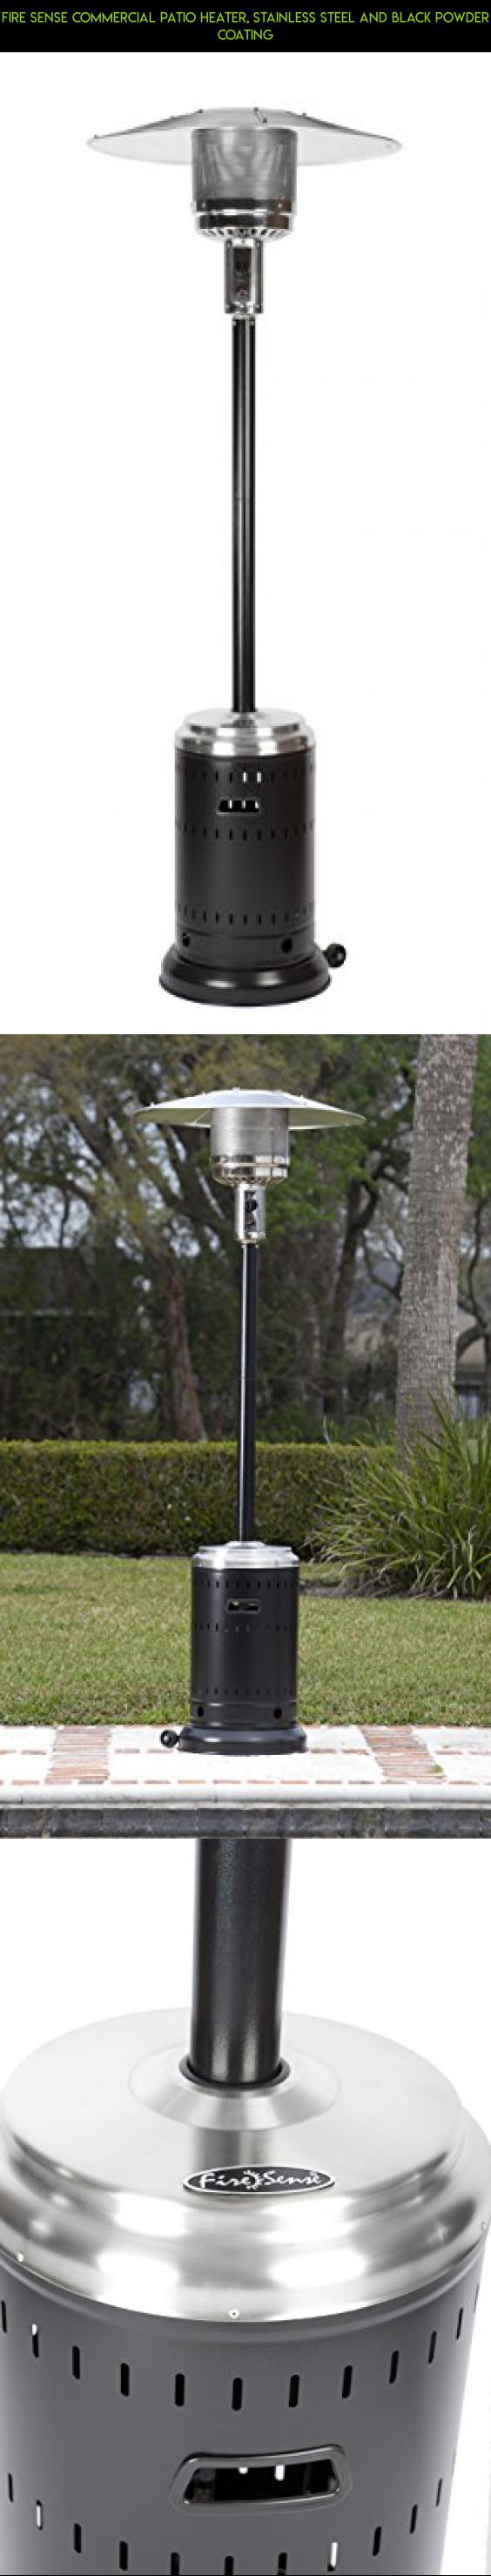 Fire Sense Commercial Patio Heater, Stainless Steel And Black Powder  Coating #shopping #gadgets